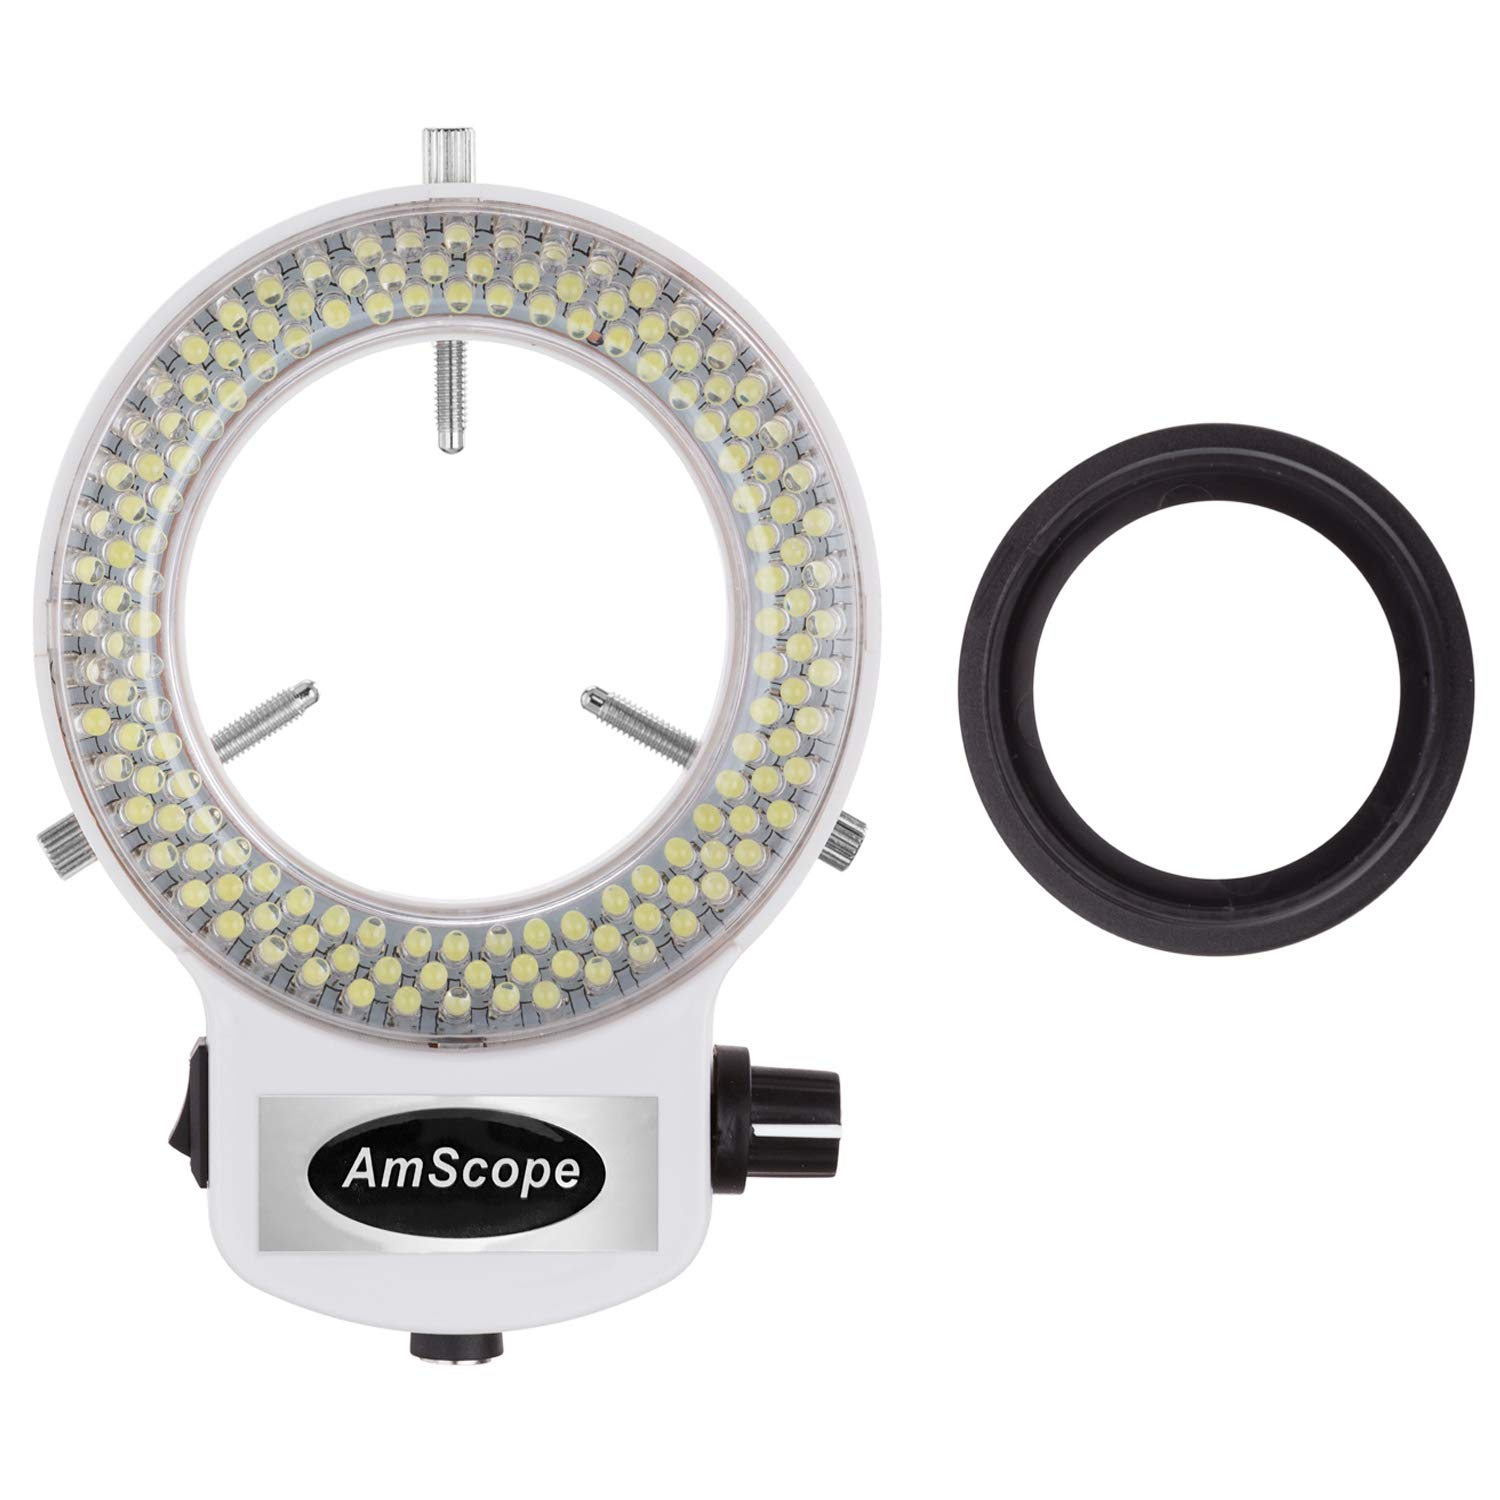 AmScope LED-144W-ZK White Adjustable 144 LED Ring Light Illuminator for Stereo Microscope & Camera by AmScope